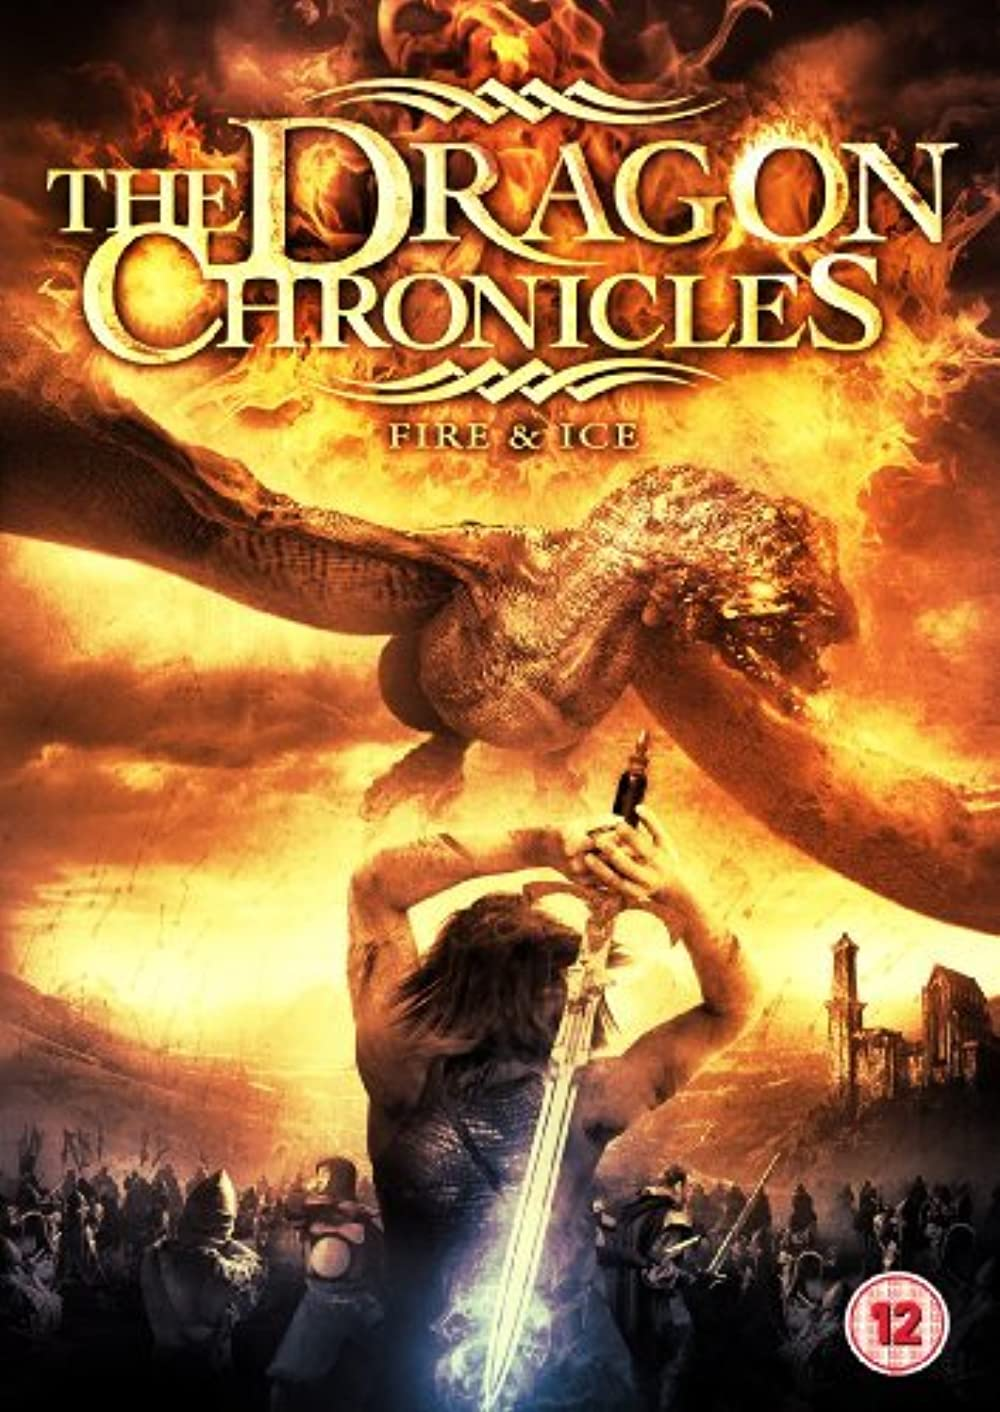 Fire and Ice The Dragon Chronicles 2008 Hindi Dual Audio 720p BluRay 1.2GB Download